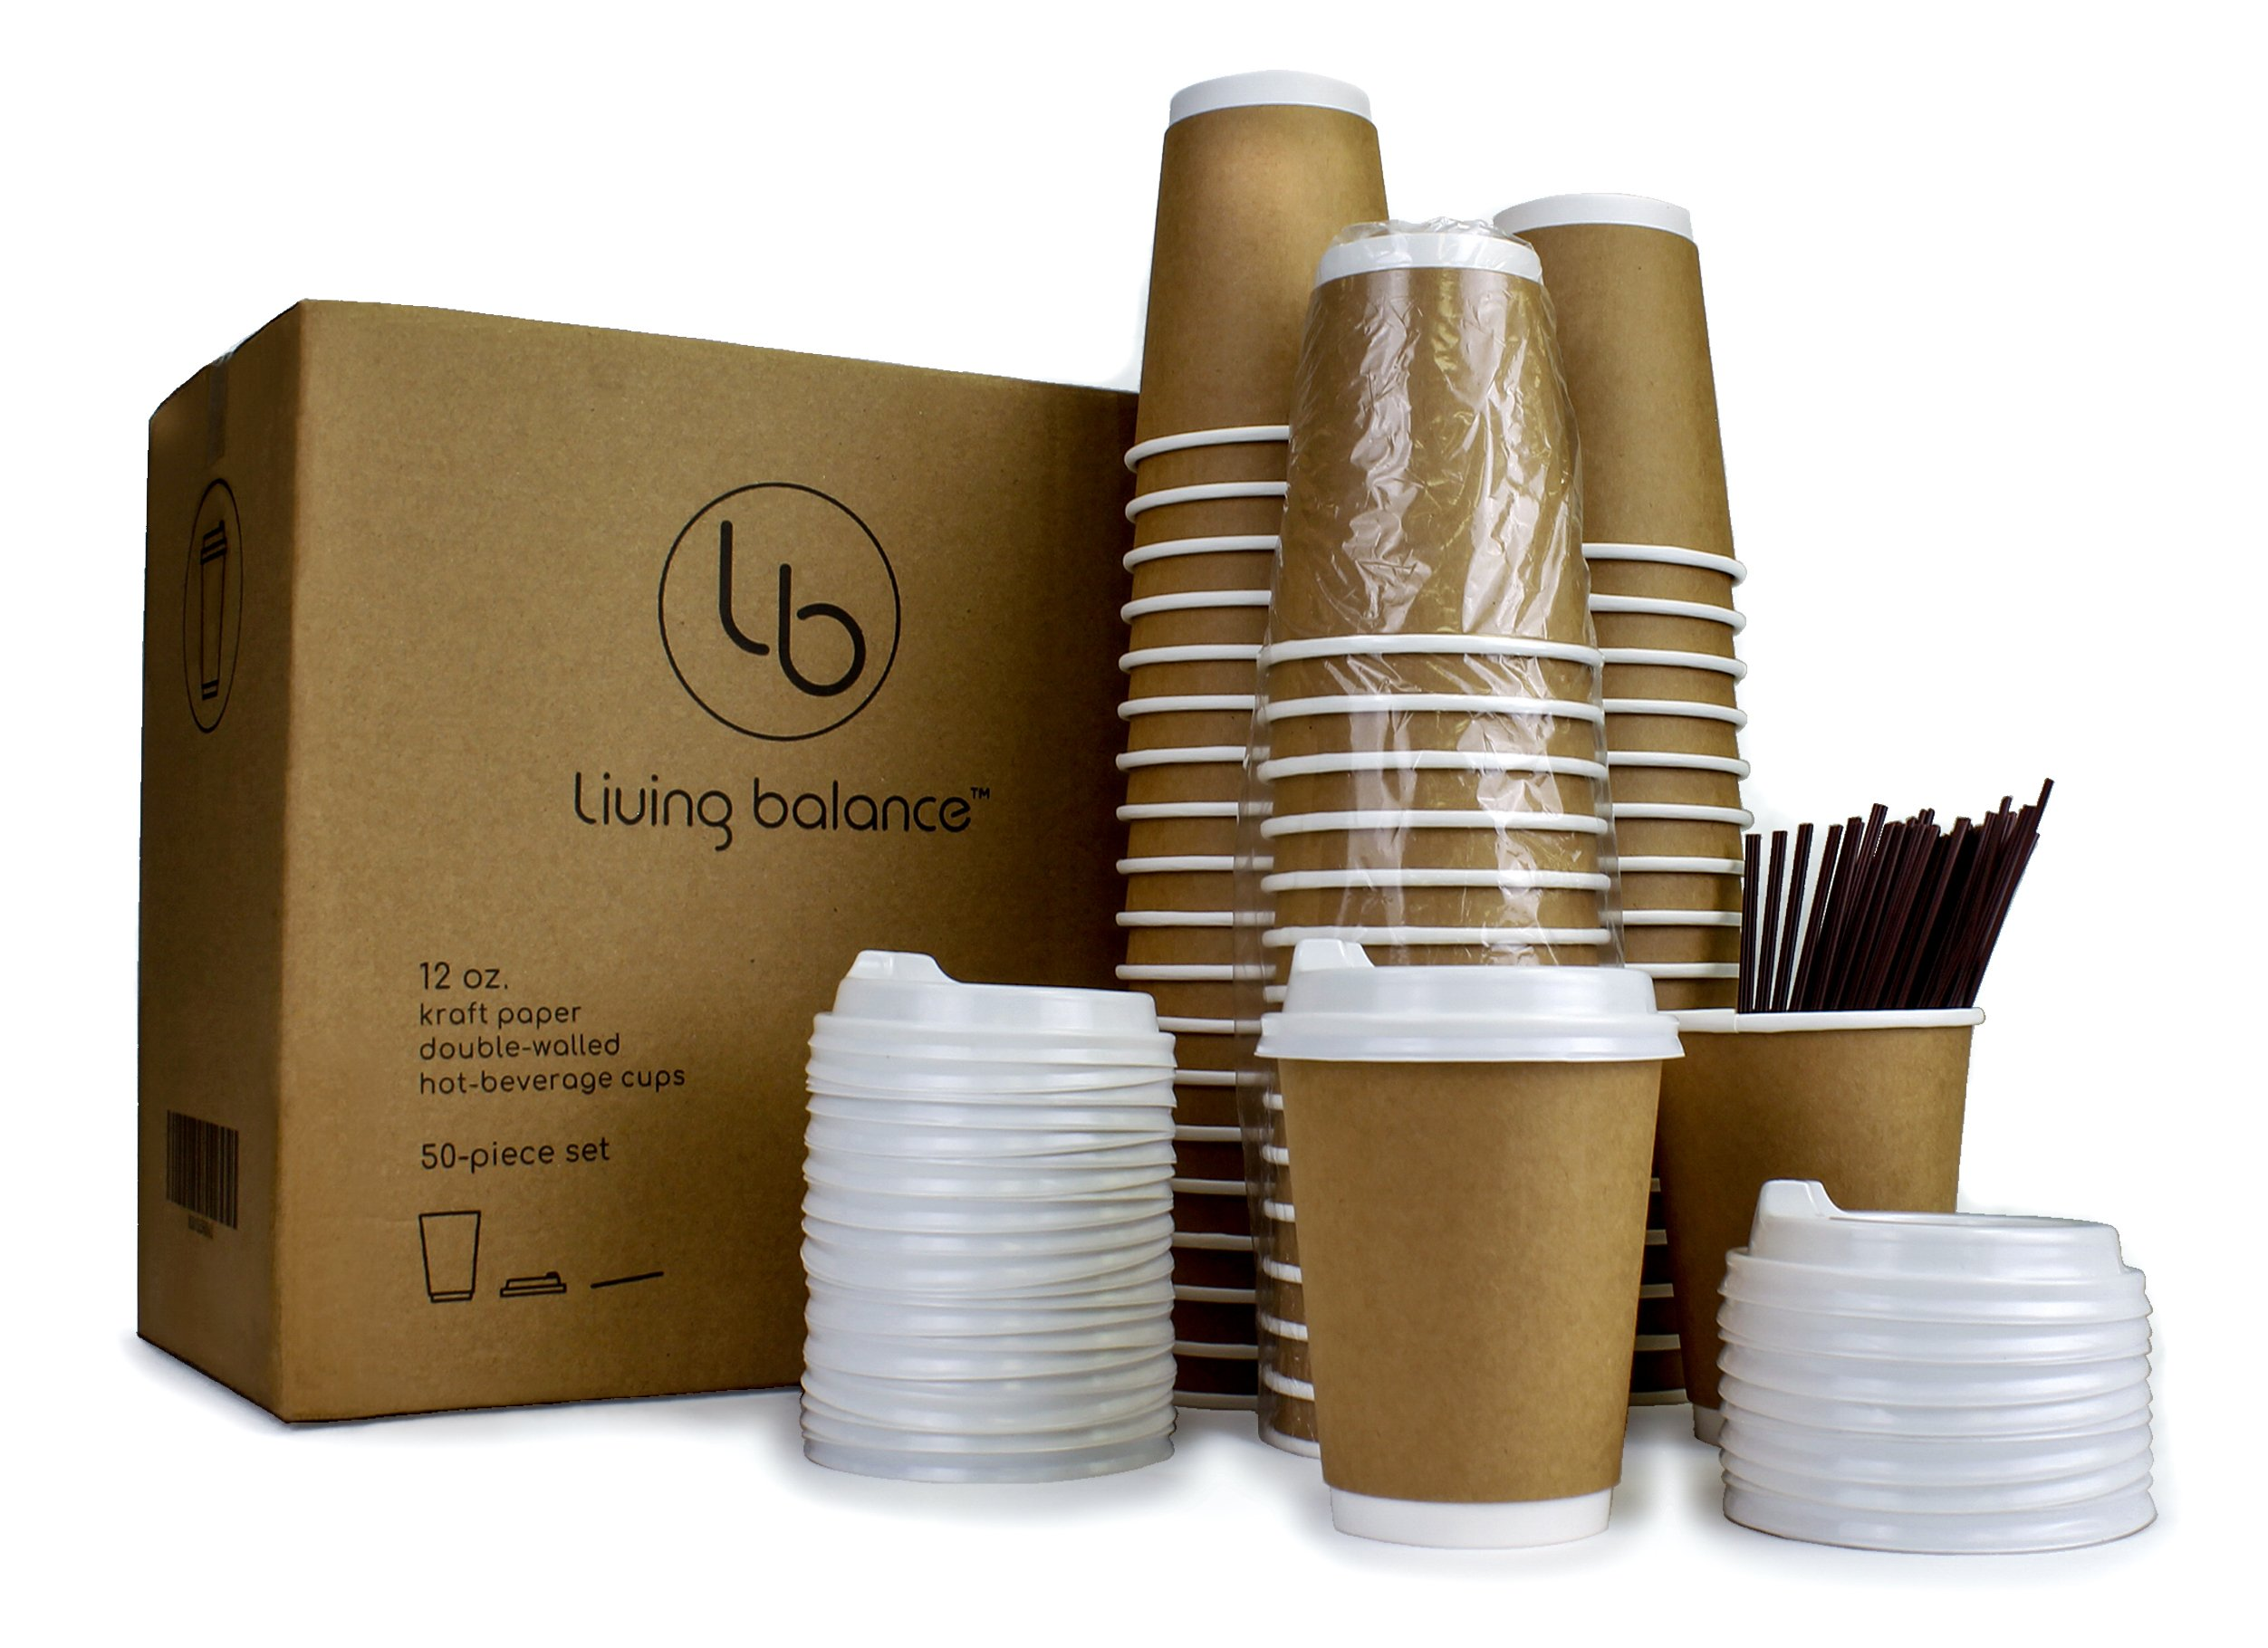 To Go Disposable Coffee Cups with Ergonomic Lids - 50 Piece Set, 12 oz, Kraft Paper, Double-Layer Insulation, Sleeve-Free.